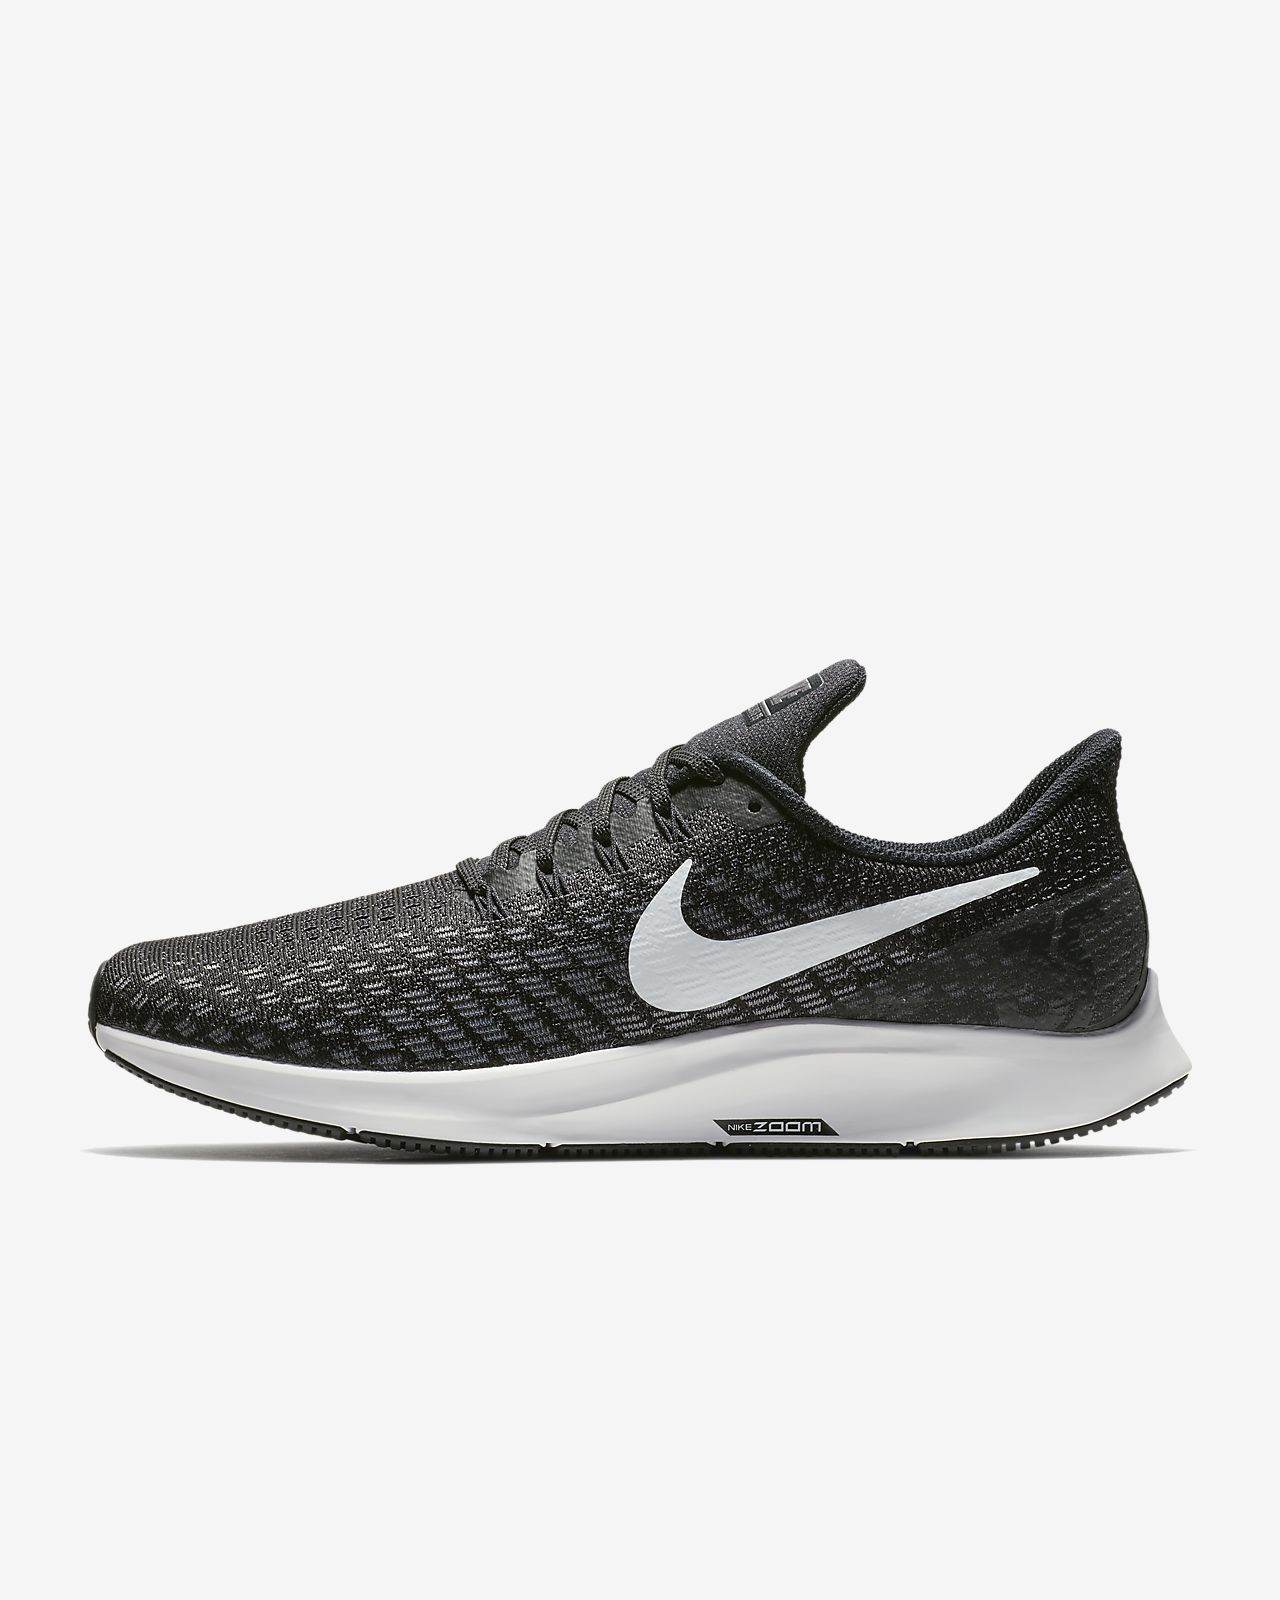 premium selection a077b a059f Nike Air Zoom Pegasus 35 Men's Running Shoe. Nike.com